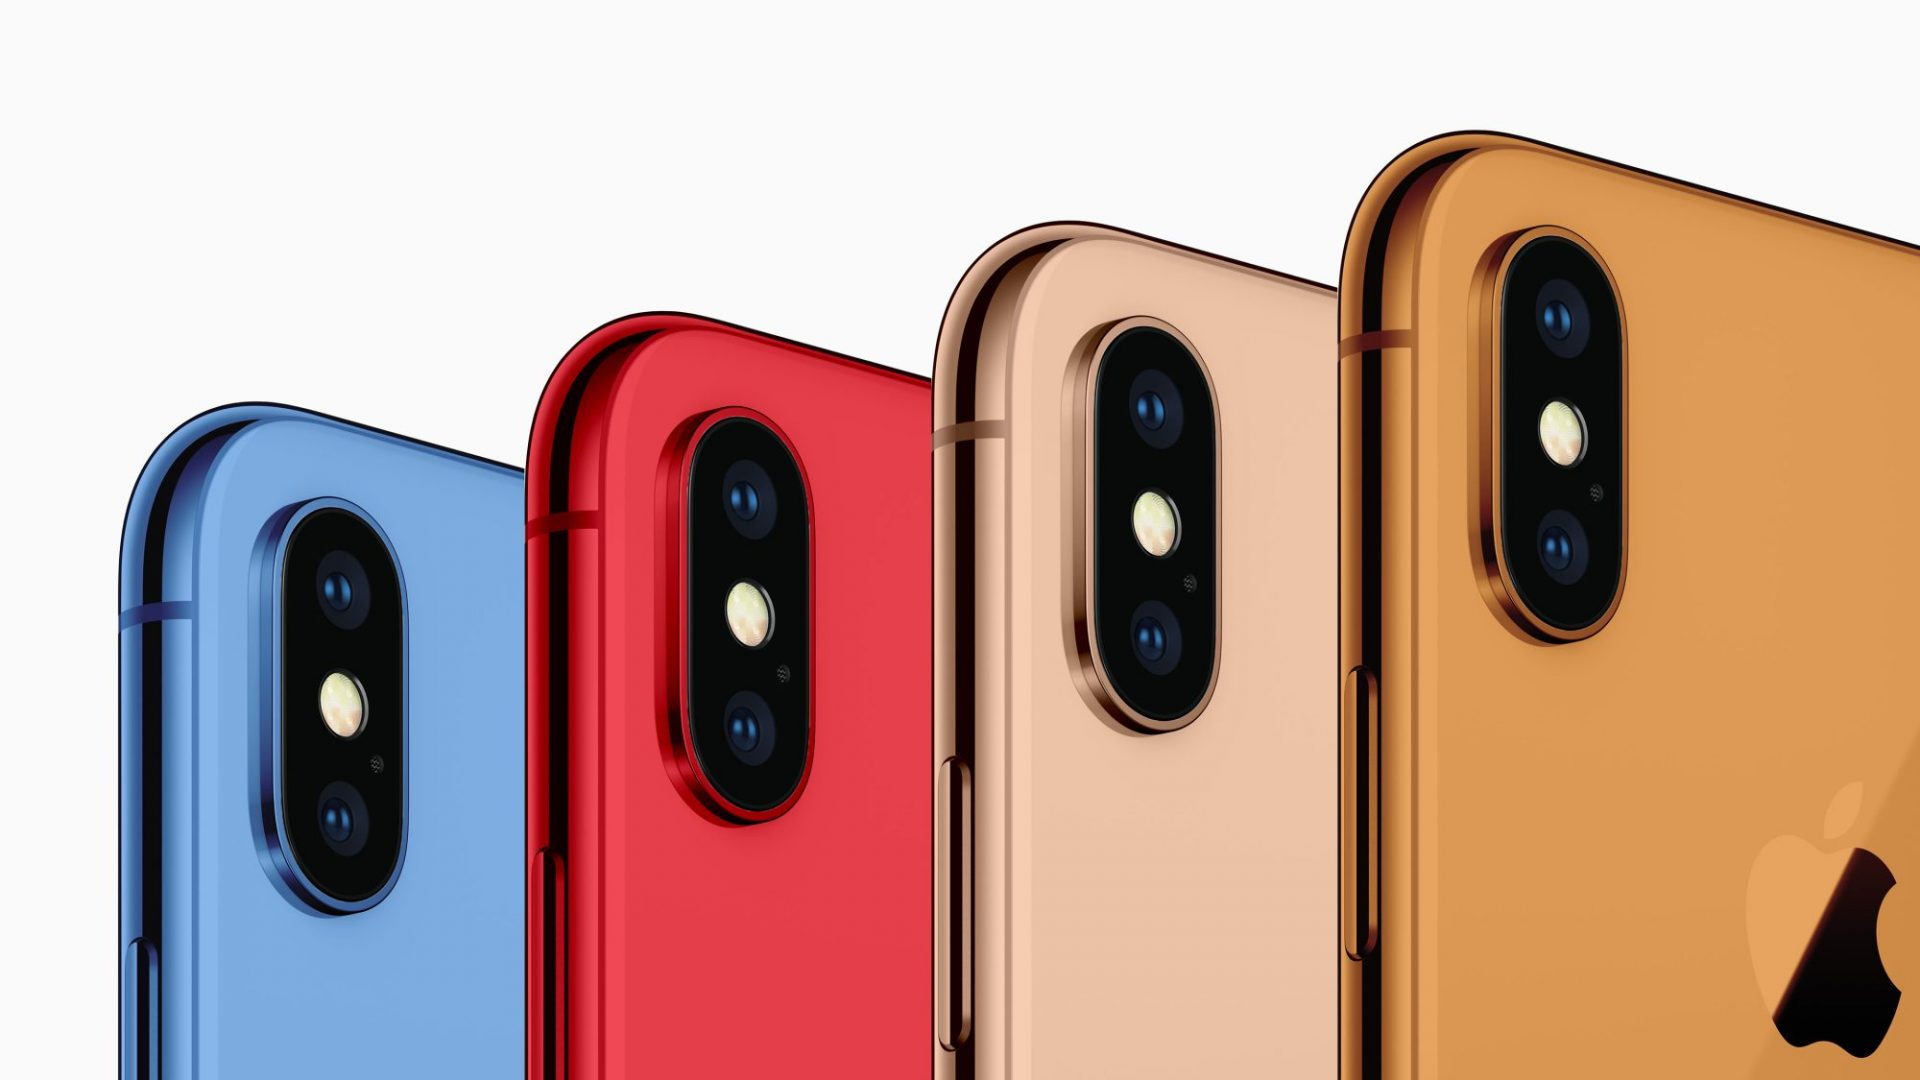 iphone 2018 colors colorazioni gold red grey oled